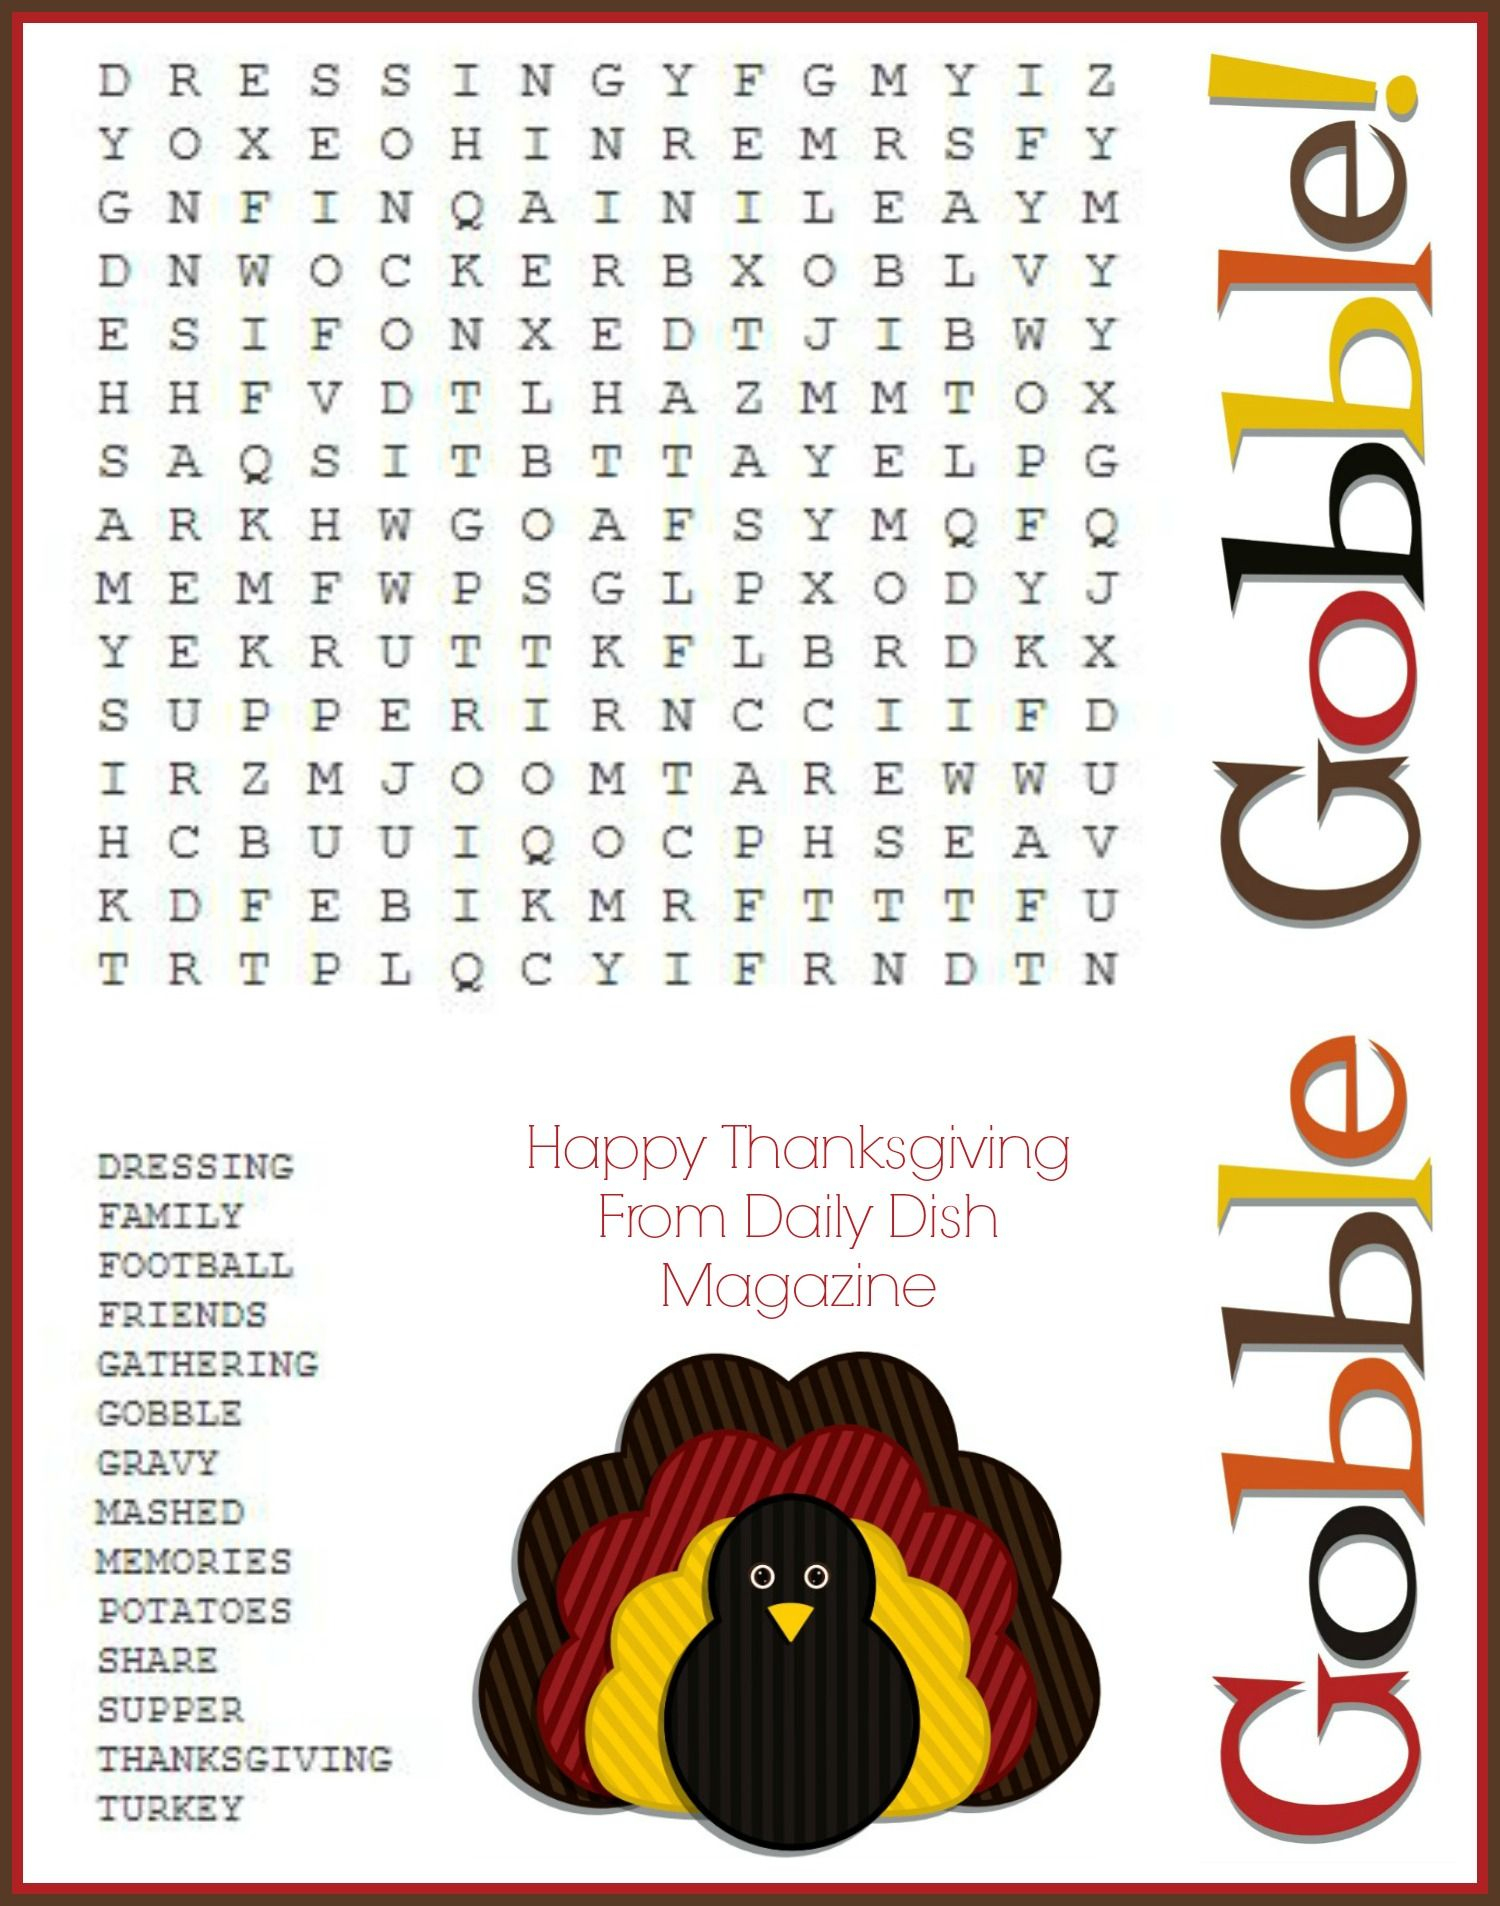 Free Thanksgiving Puzzles ~ Word Search And Maze Printable | Crafty - Printable Thanksgiving Puzzles For Adults